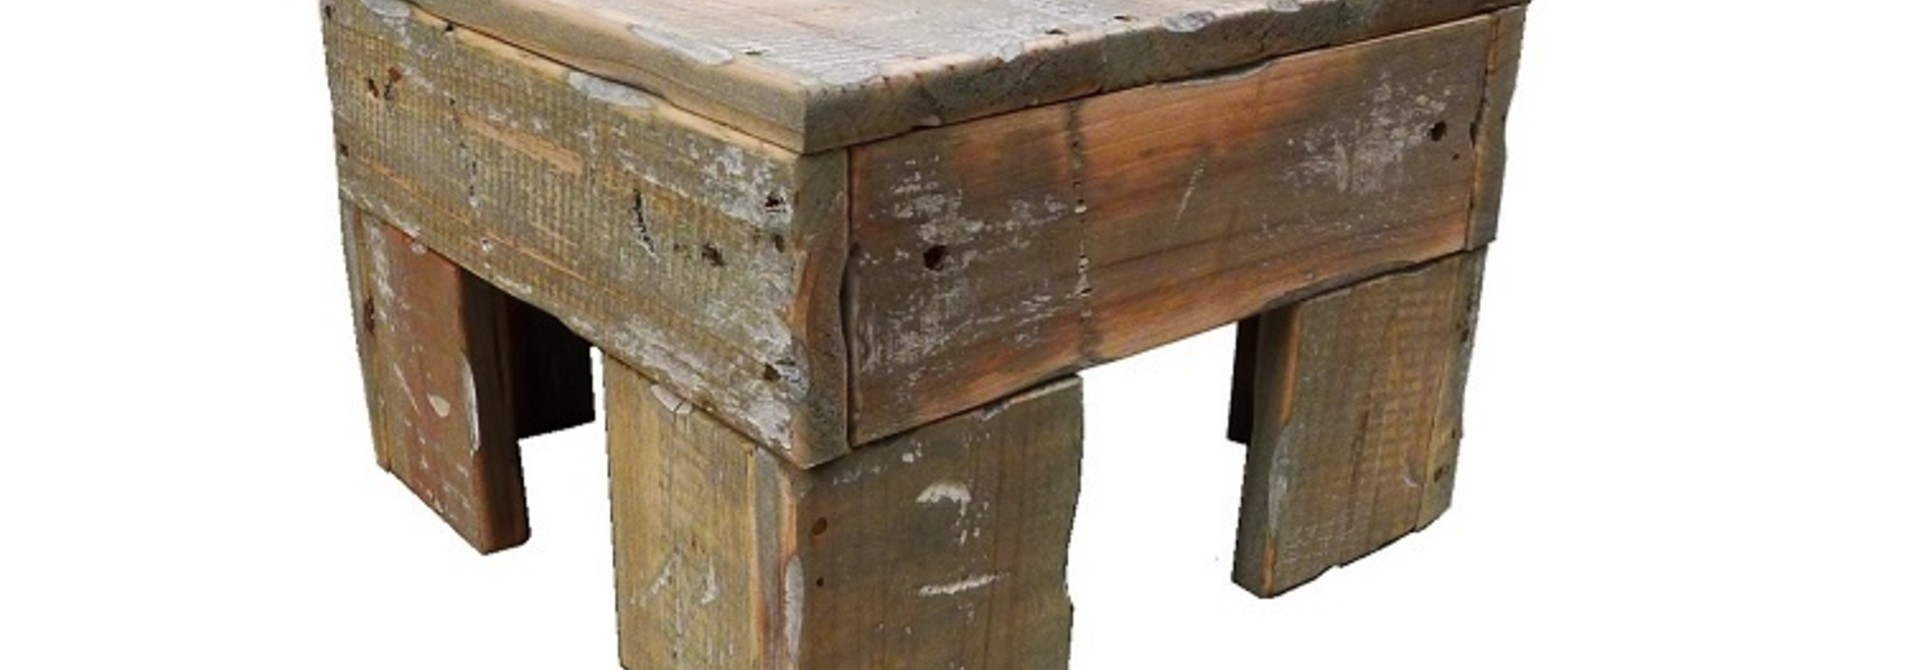 shop int old dutch up table 33